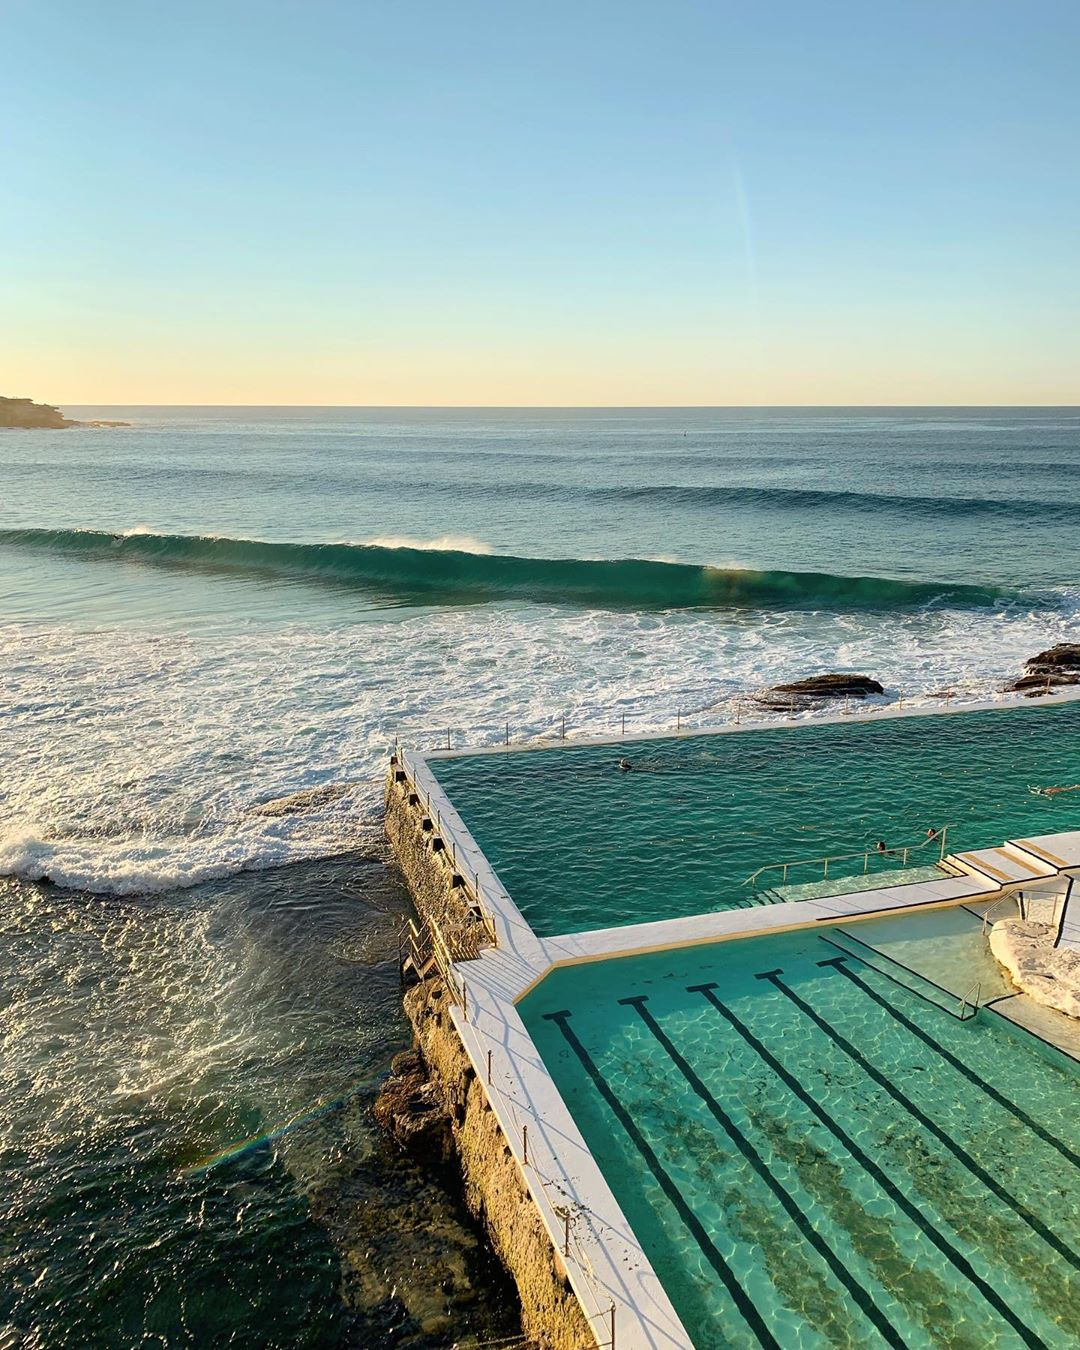 The waves rolling in next to the Bondi Icebergs